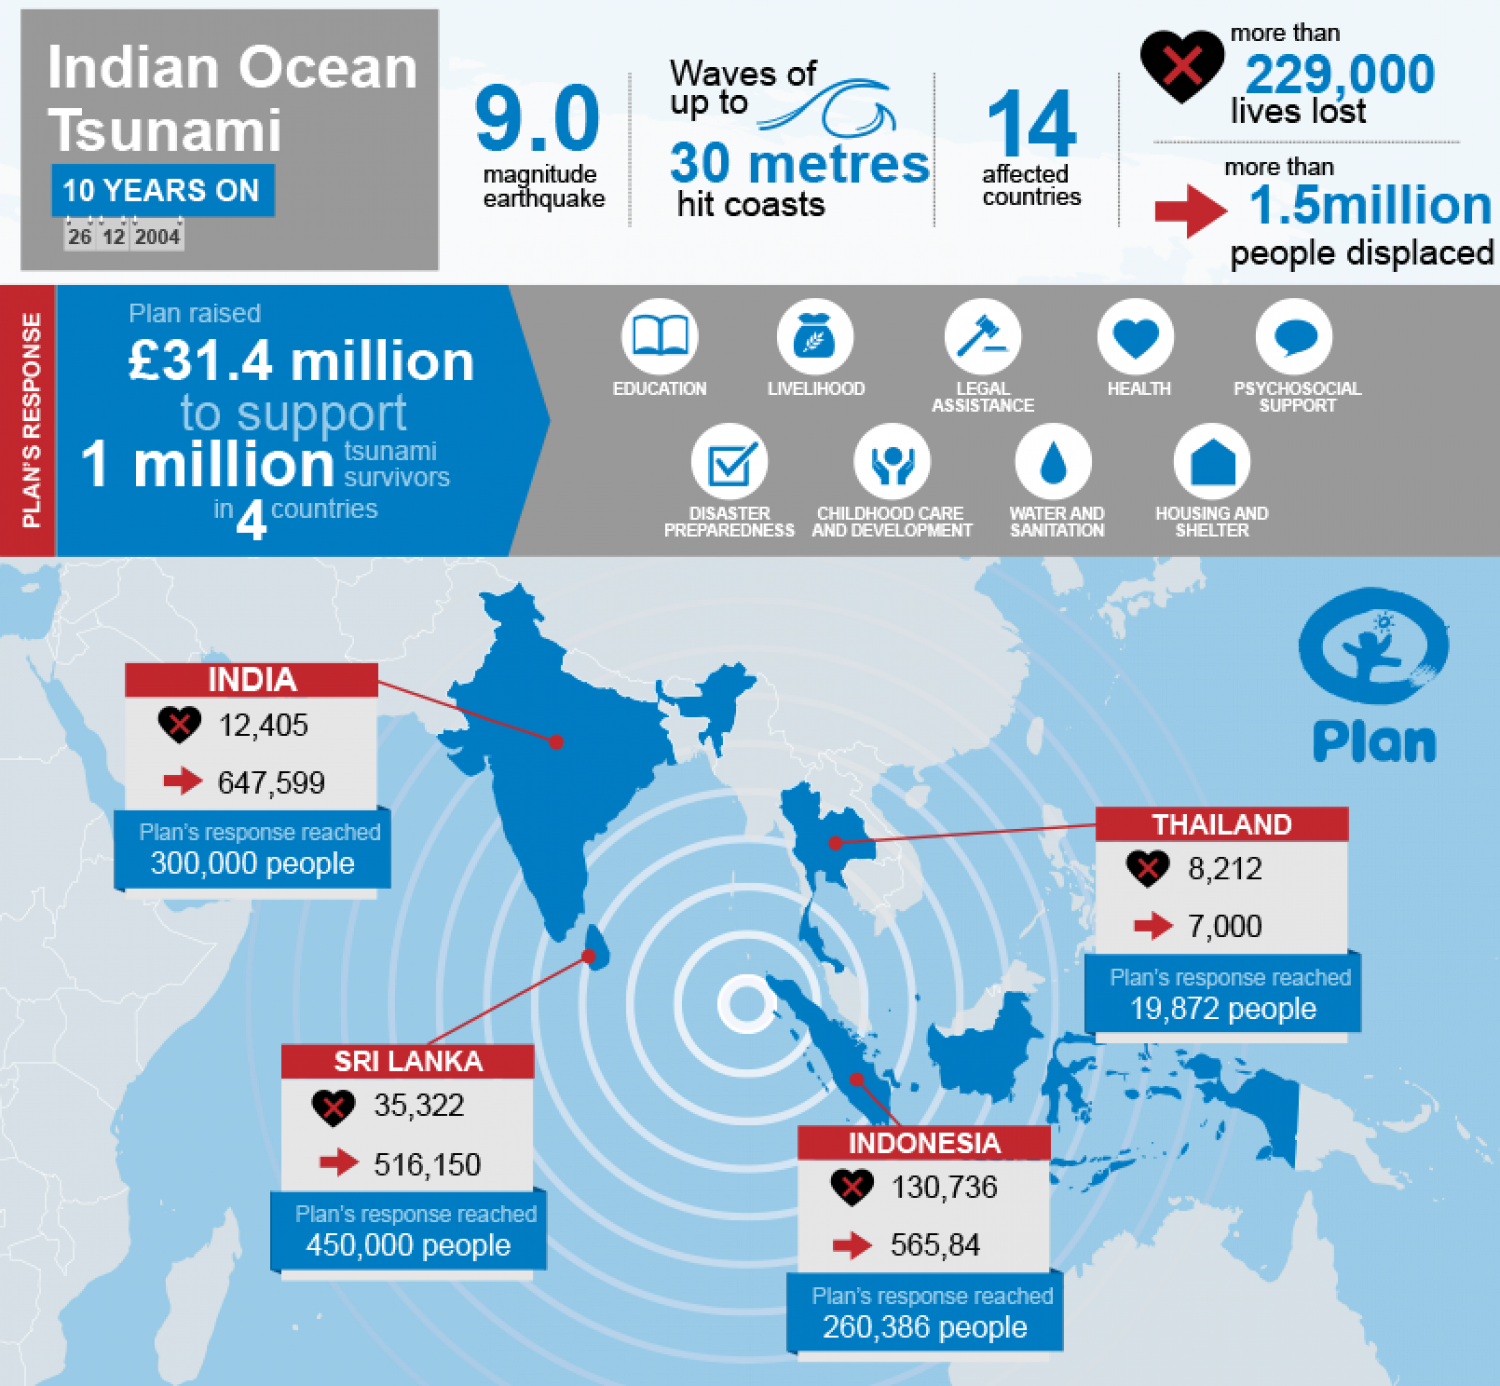 Indian Ocean Tsunami - 10 Years On Infographic